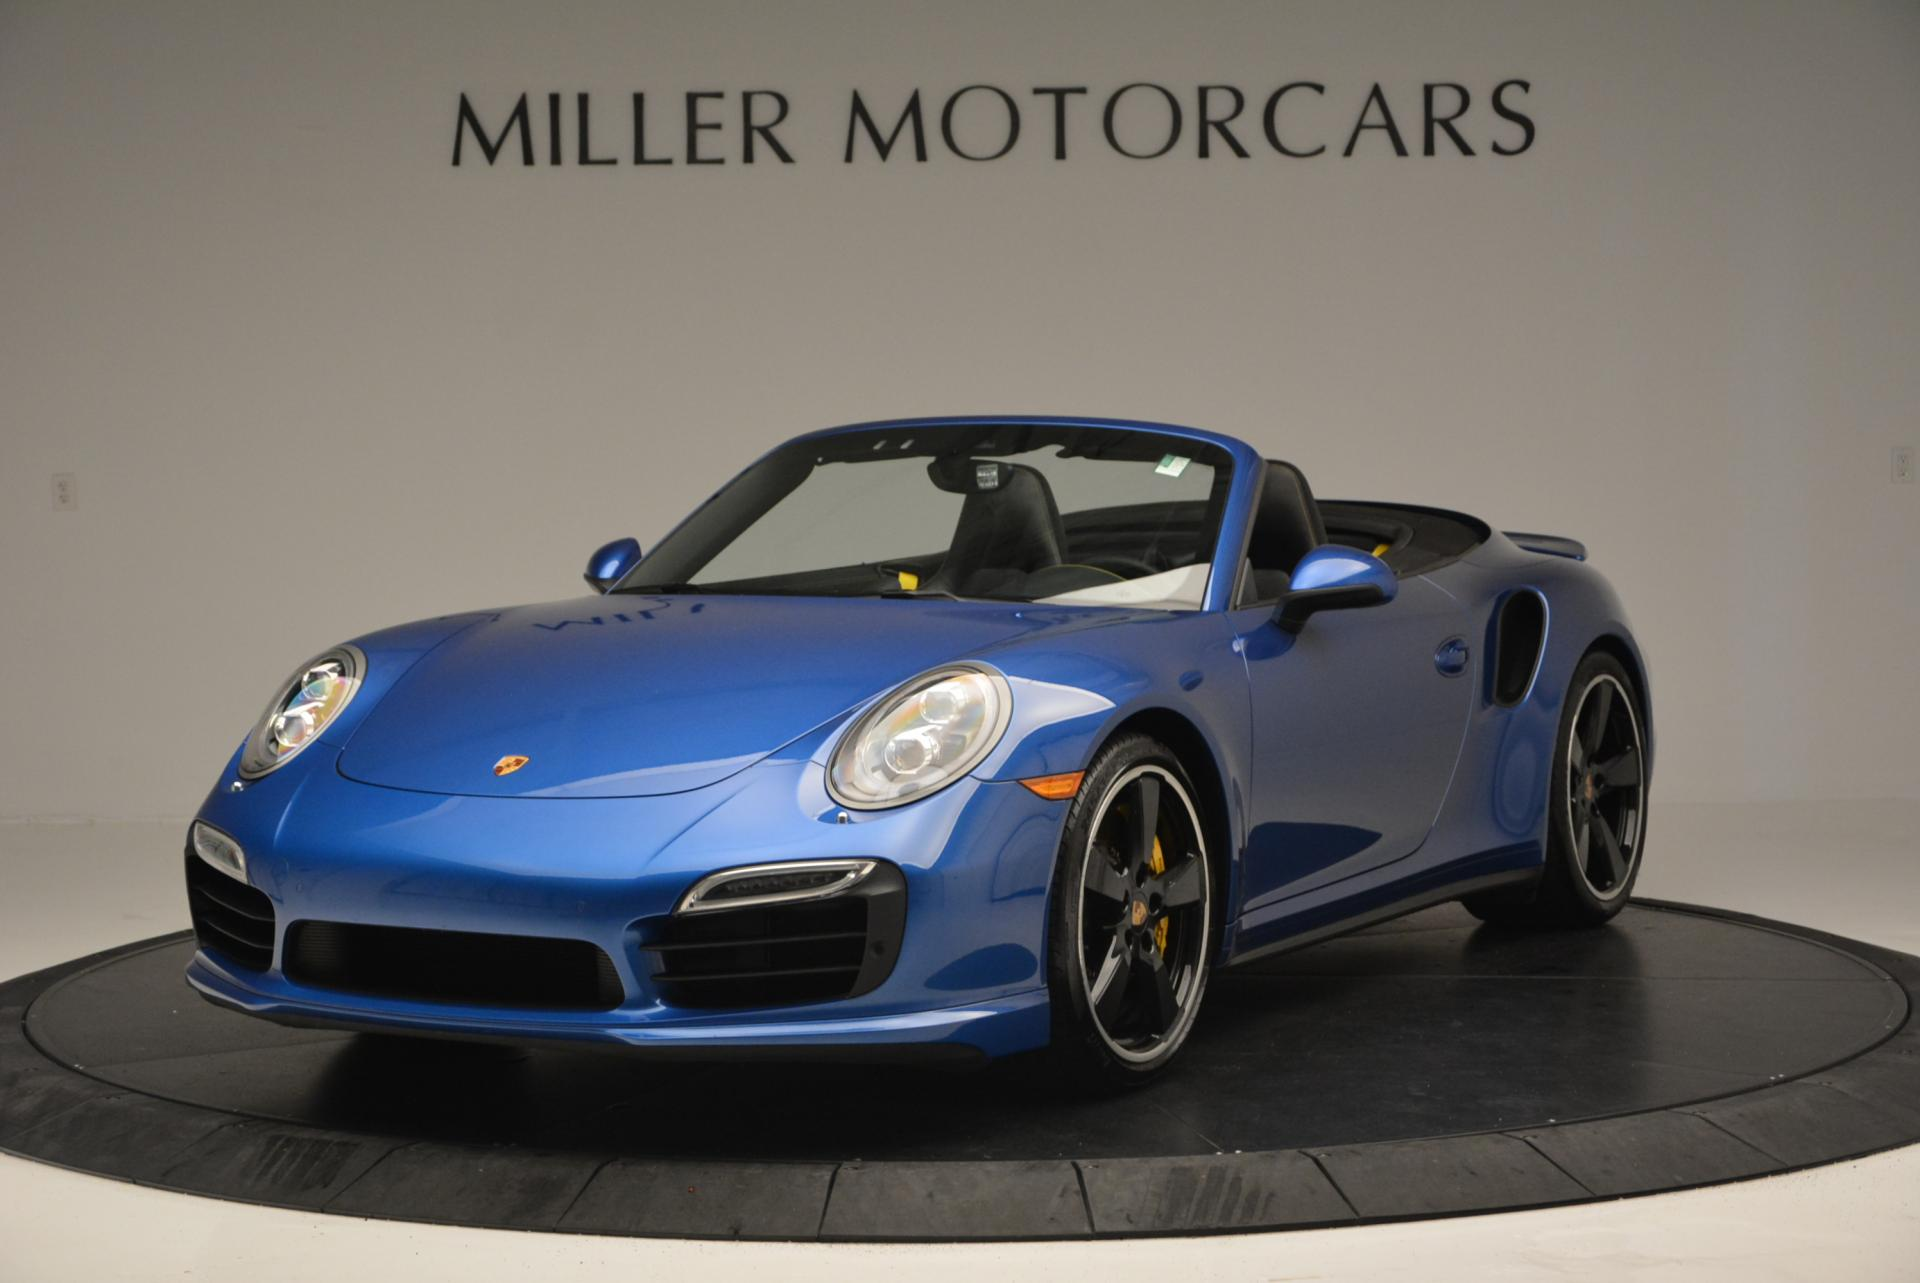 Used 2014 Porsche 911 Turbo S for sale Sold at McLaren Greenwich in Greenwich CT 06830 1